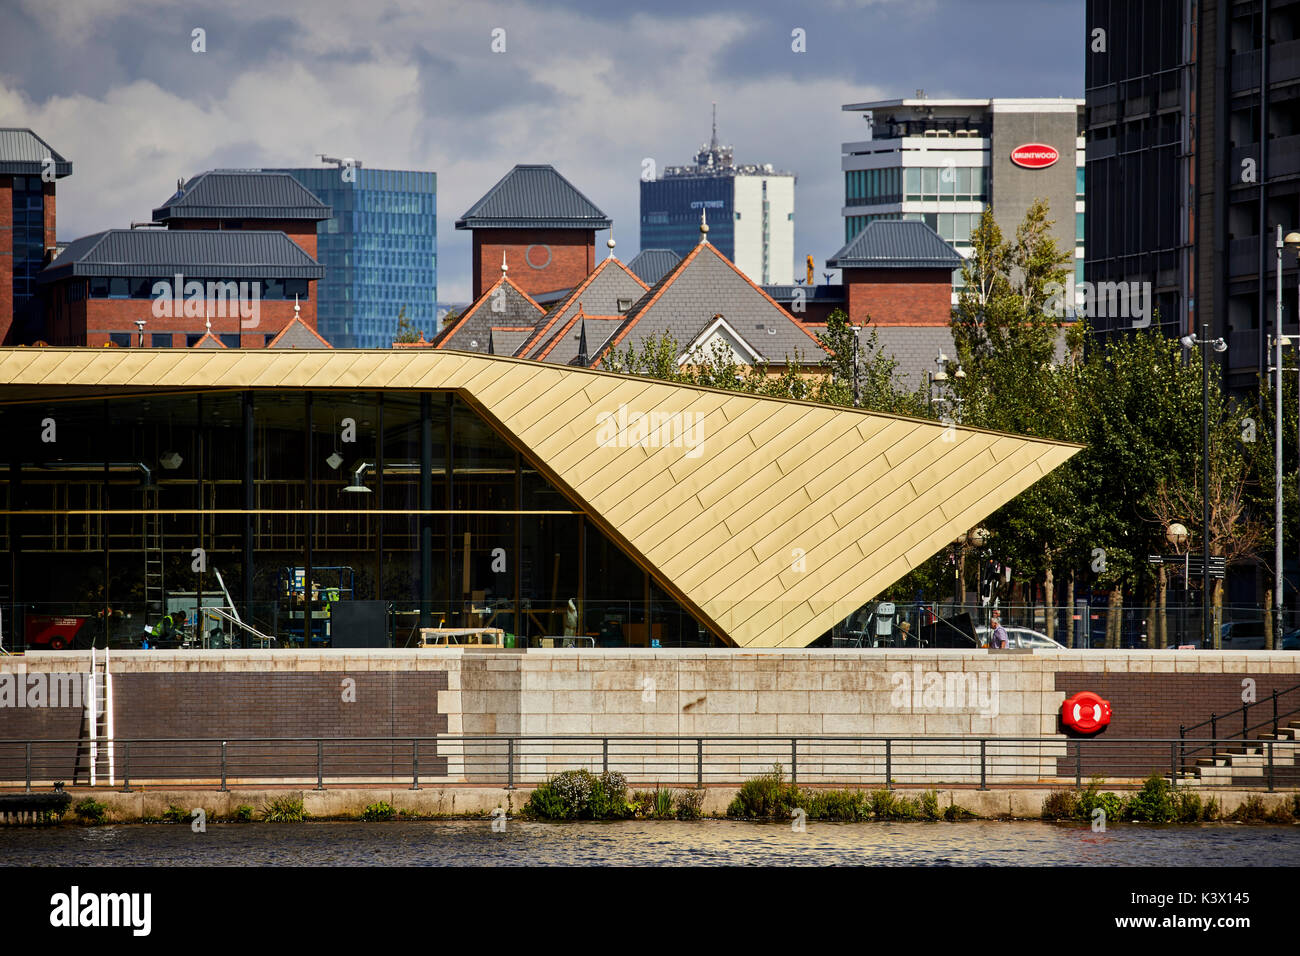 Regeneration docks area MediaCityUk at Salford Quays Gtr Manchester, gold modern architecture The Alchemist Bar Stock Photo